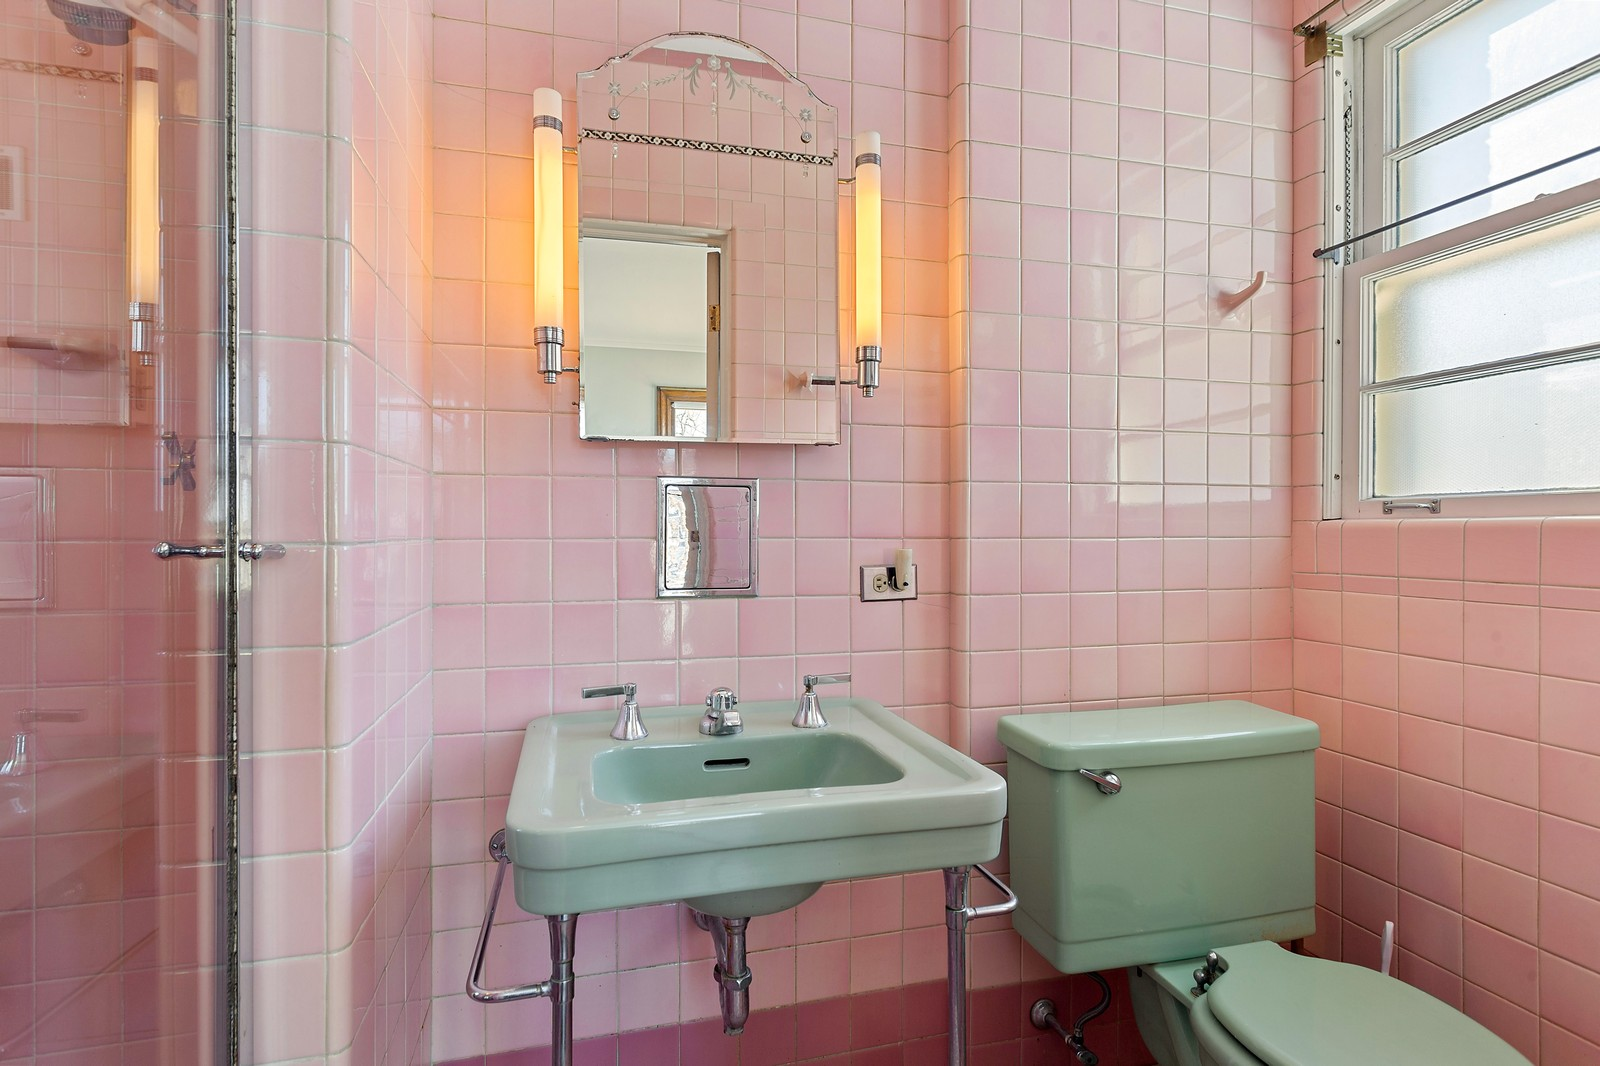 The bathroom with pink tiling and a seafoam green toilet and sink.